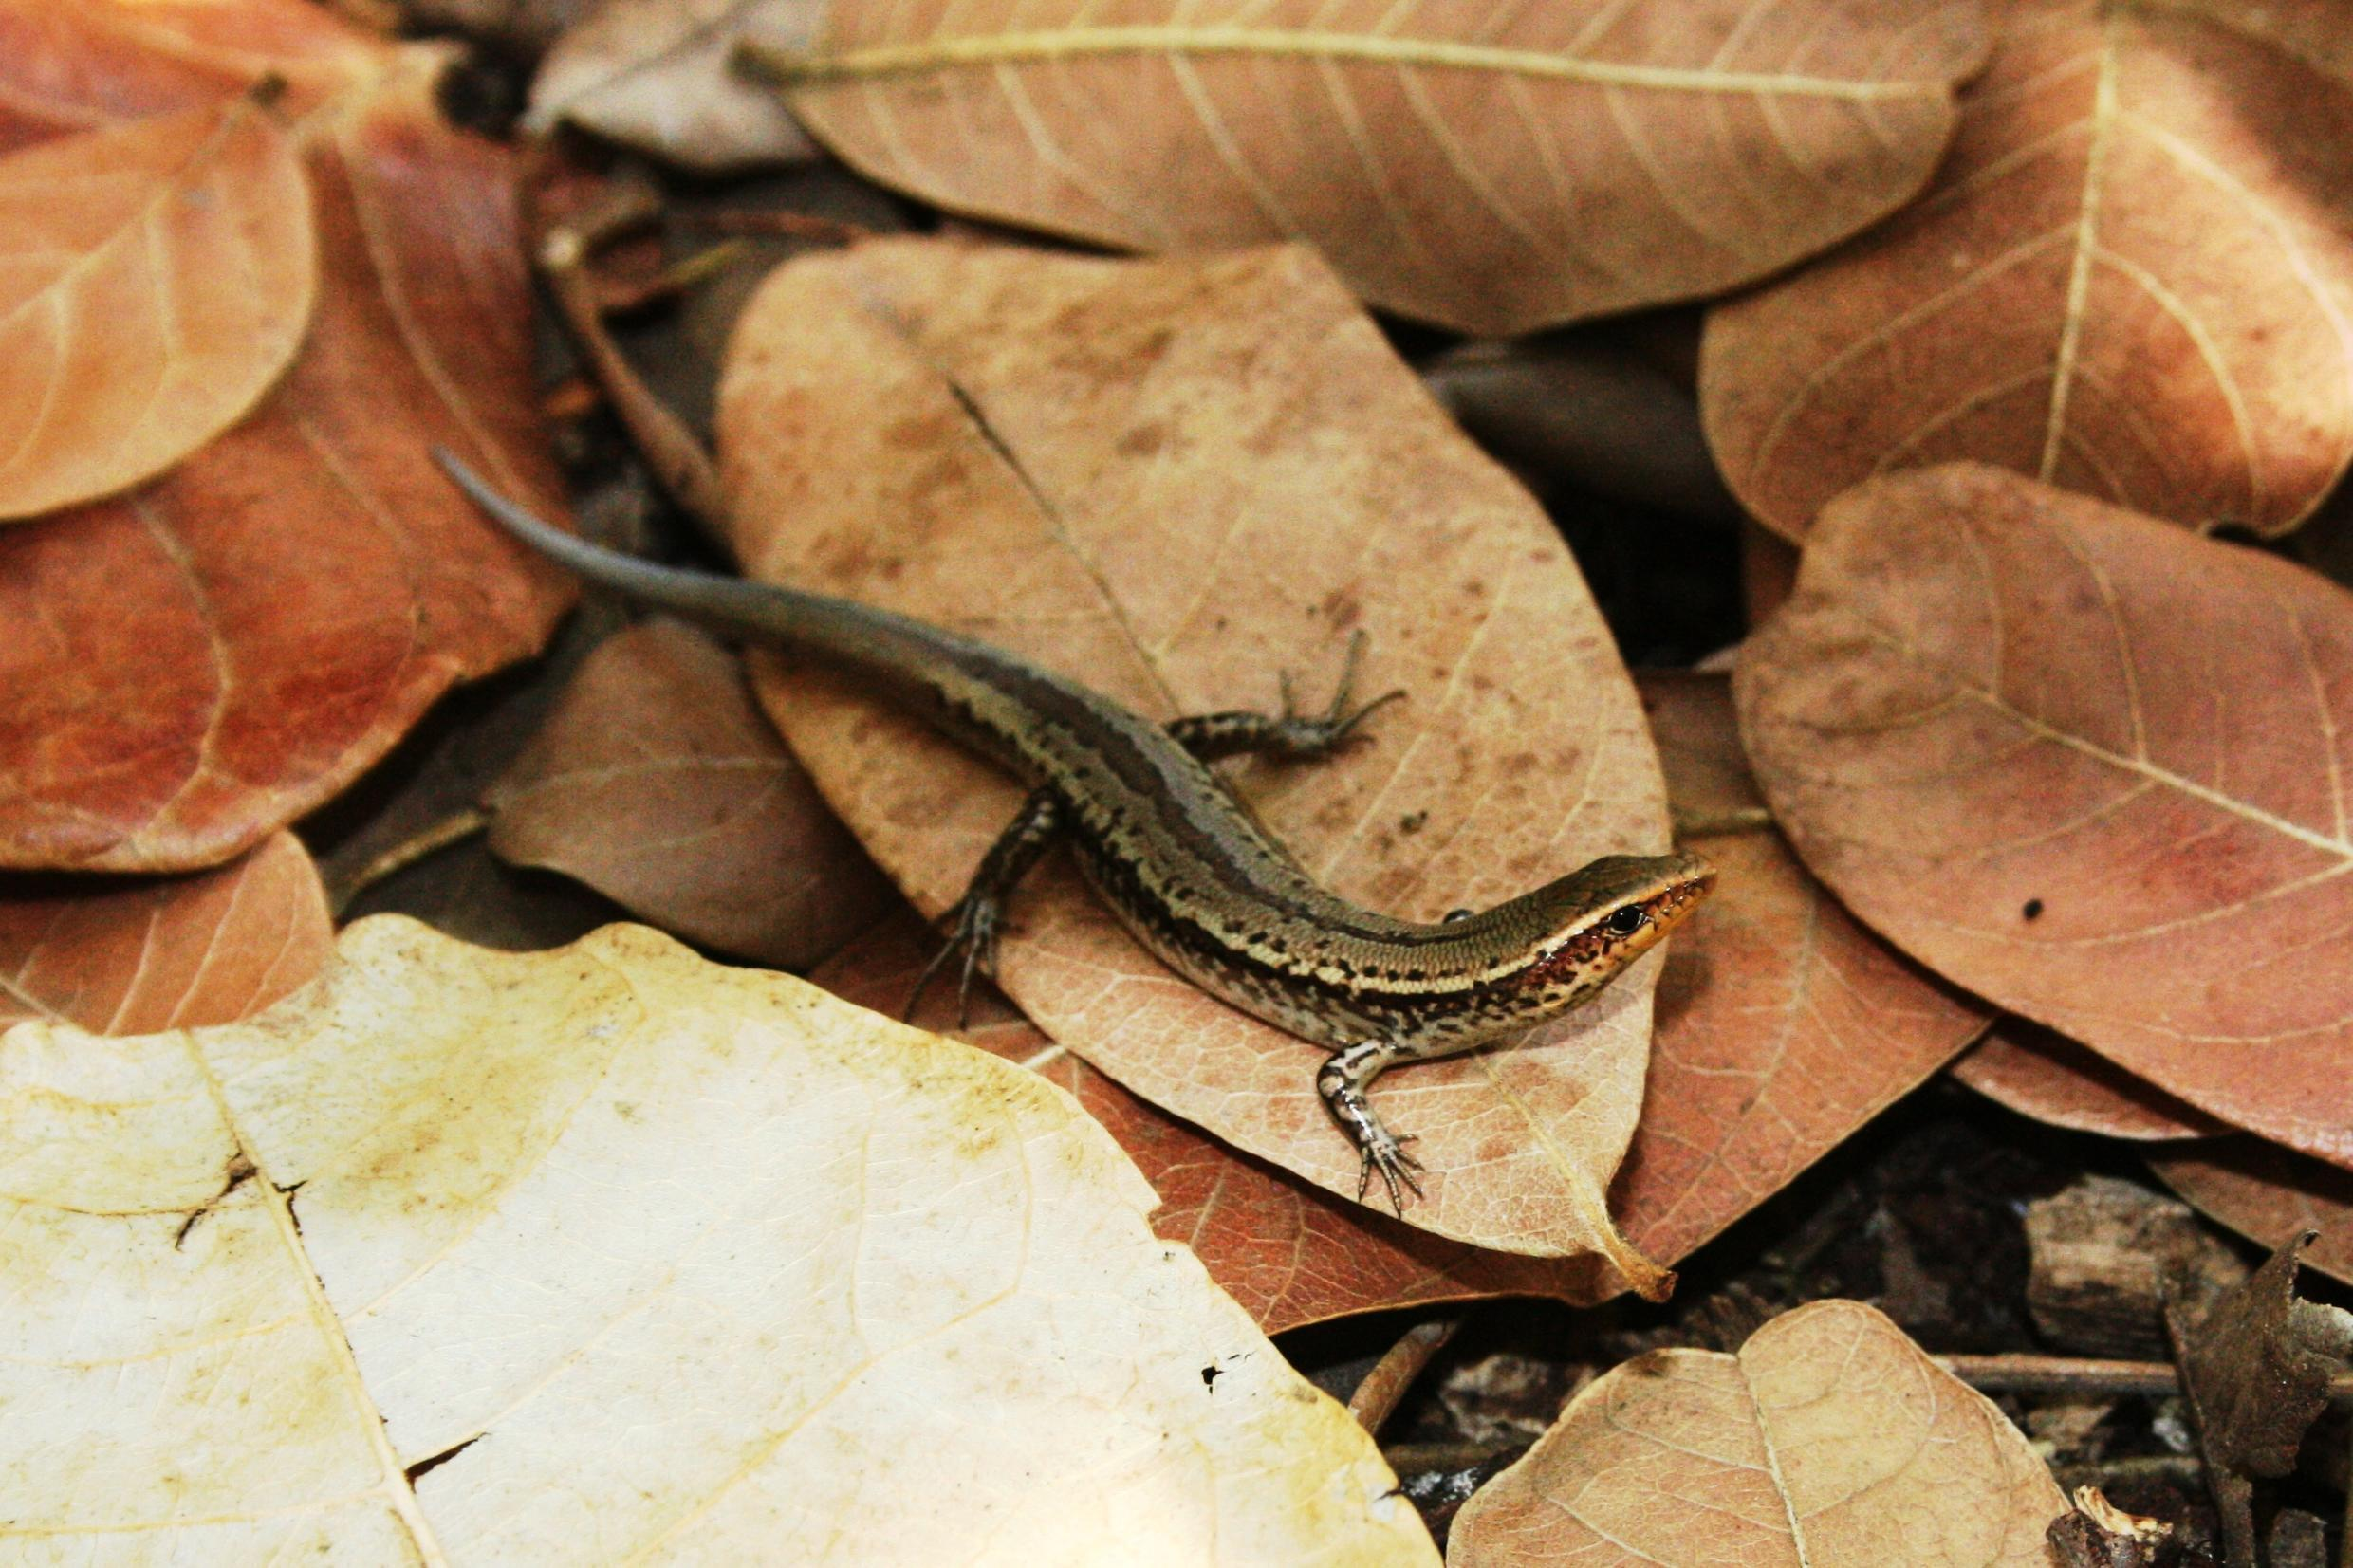 The critically endangered Bojer's skink is unique to Mauritius. Some species were transported to the mainland because of the oil spill.